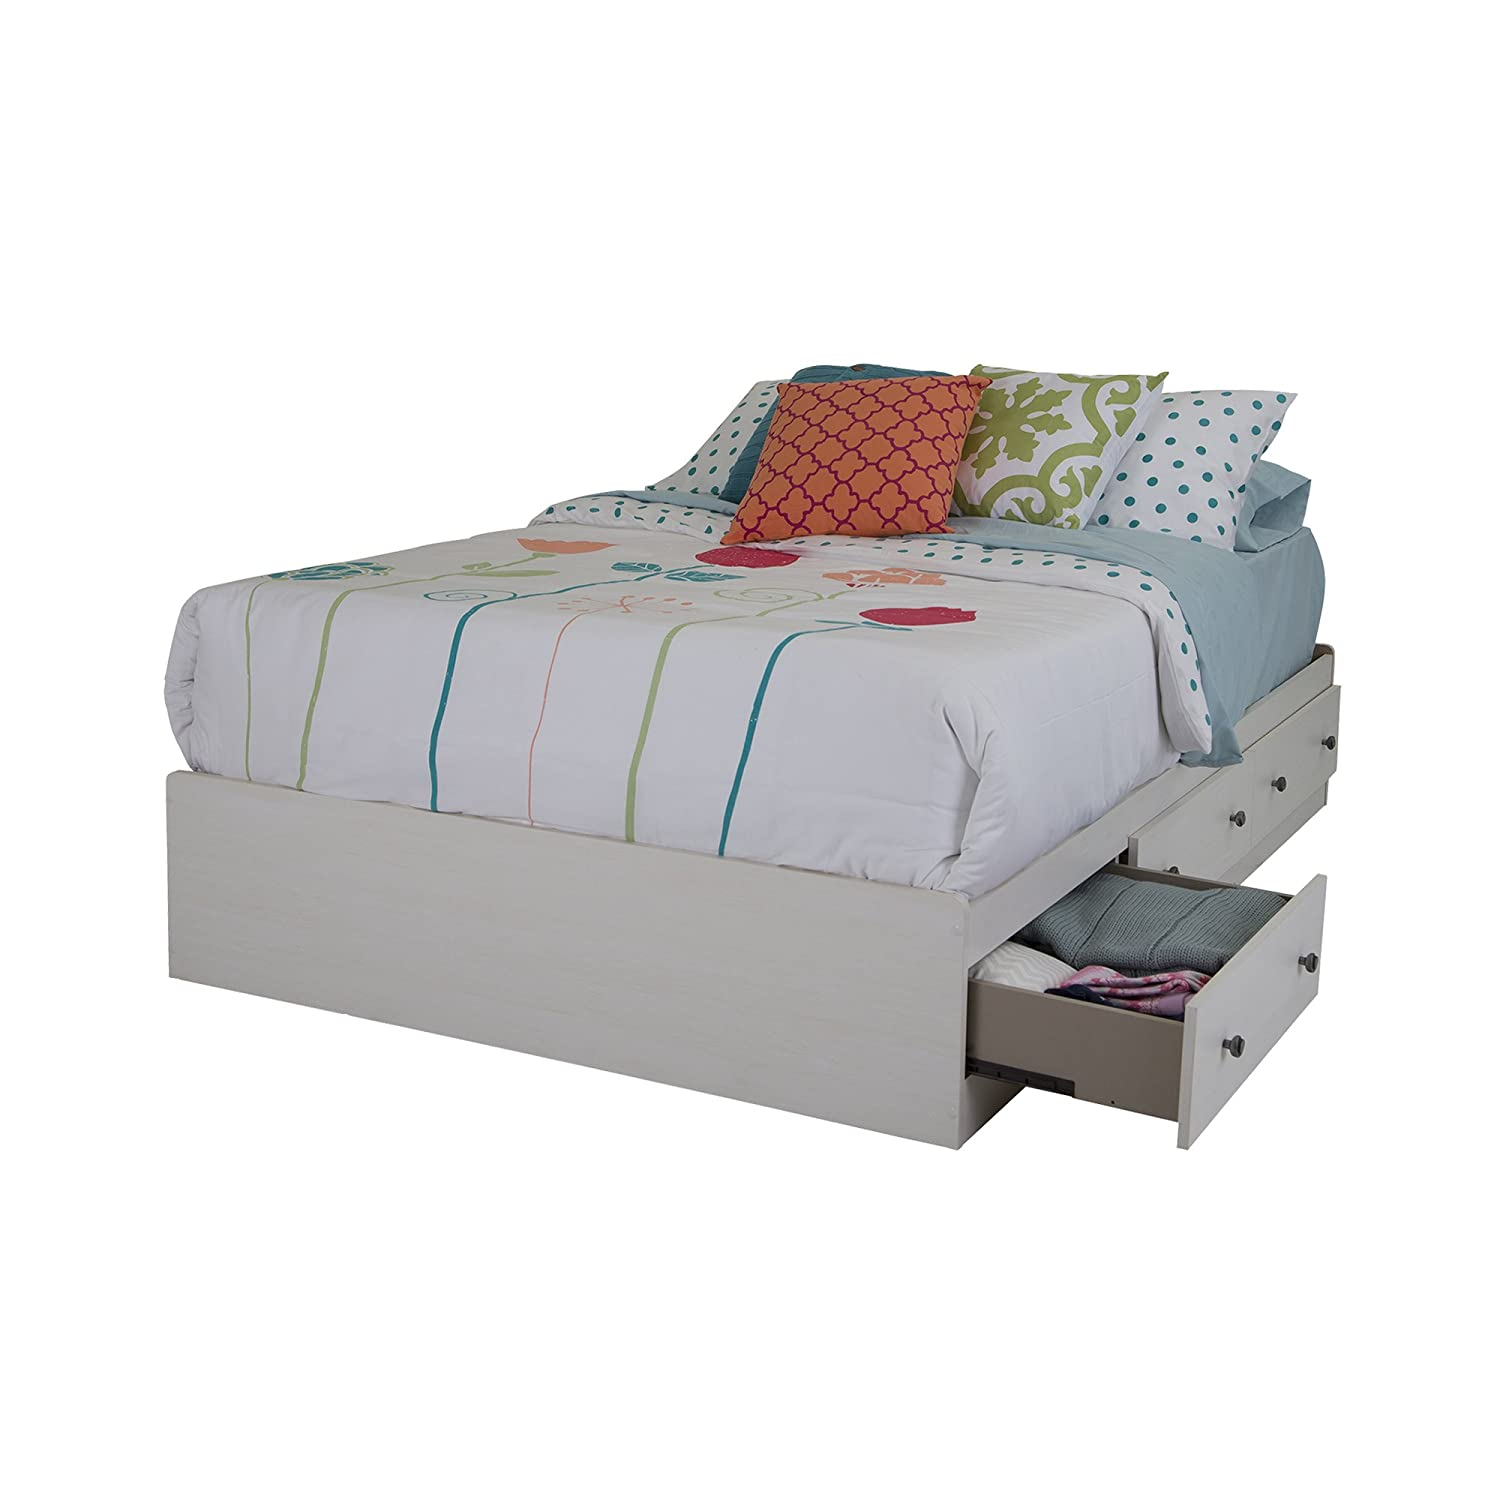 "Amazon.com: south shore 54"" country poetry mates bed with 3 ..."